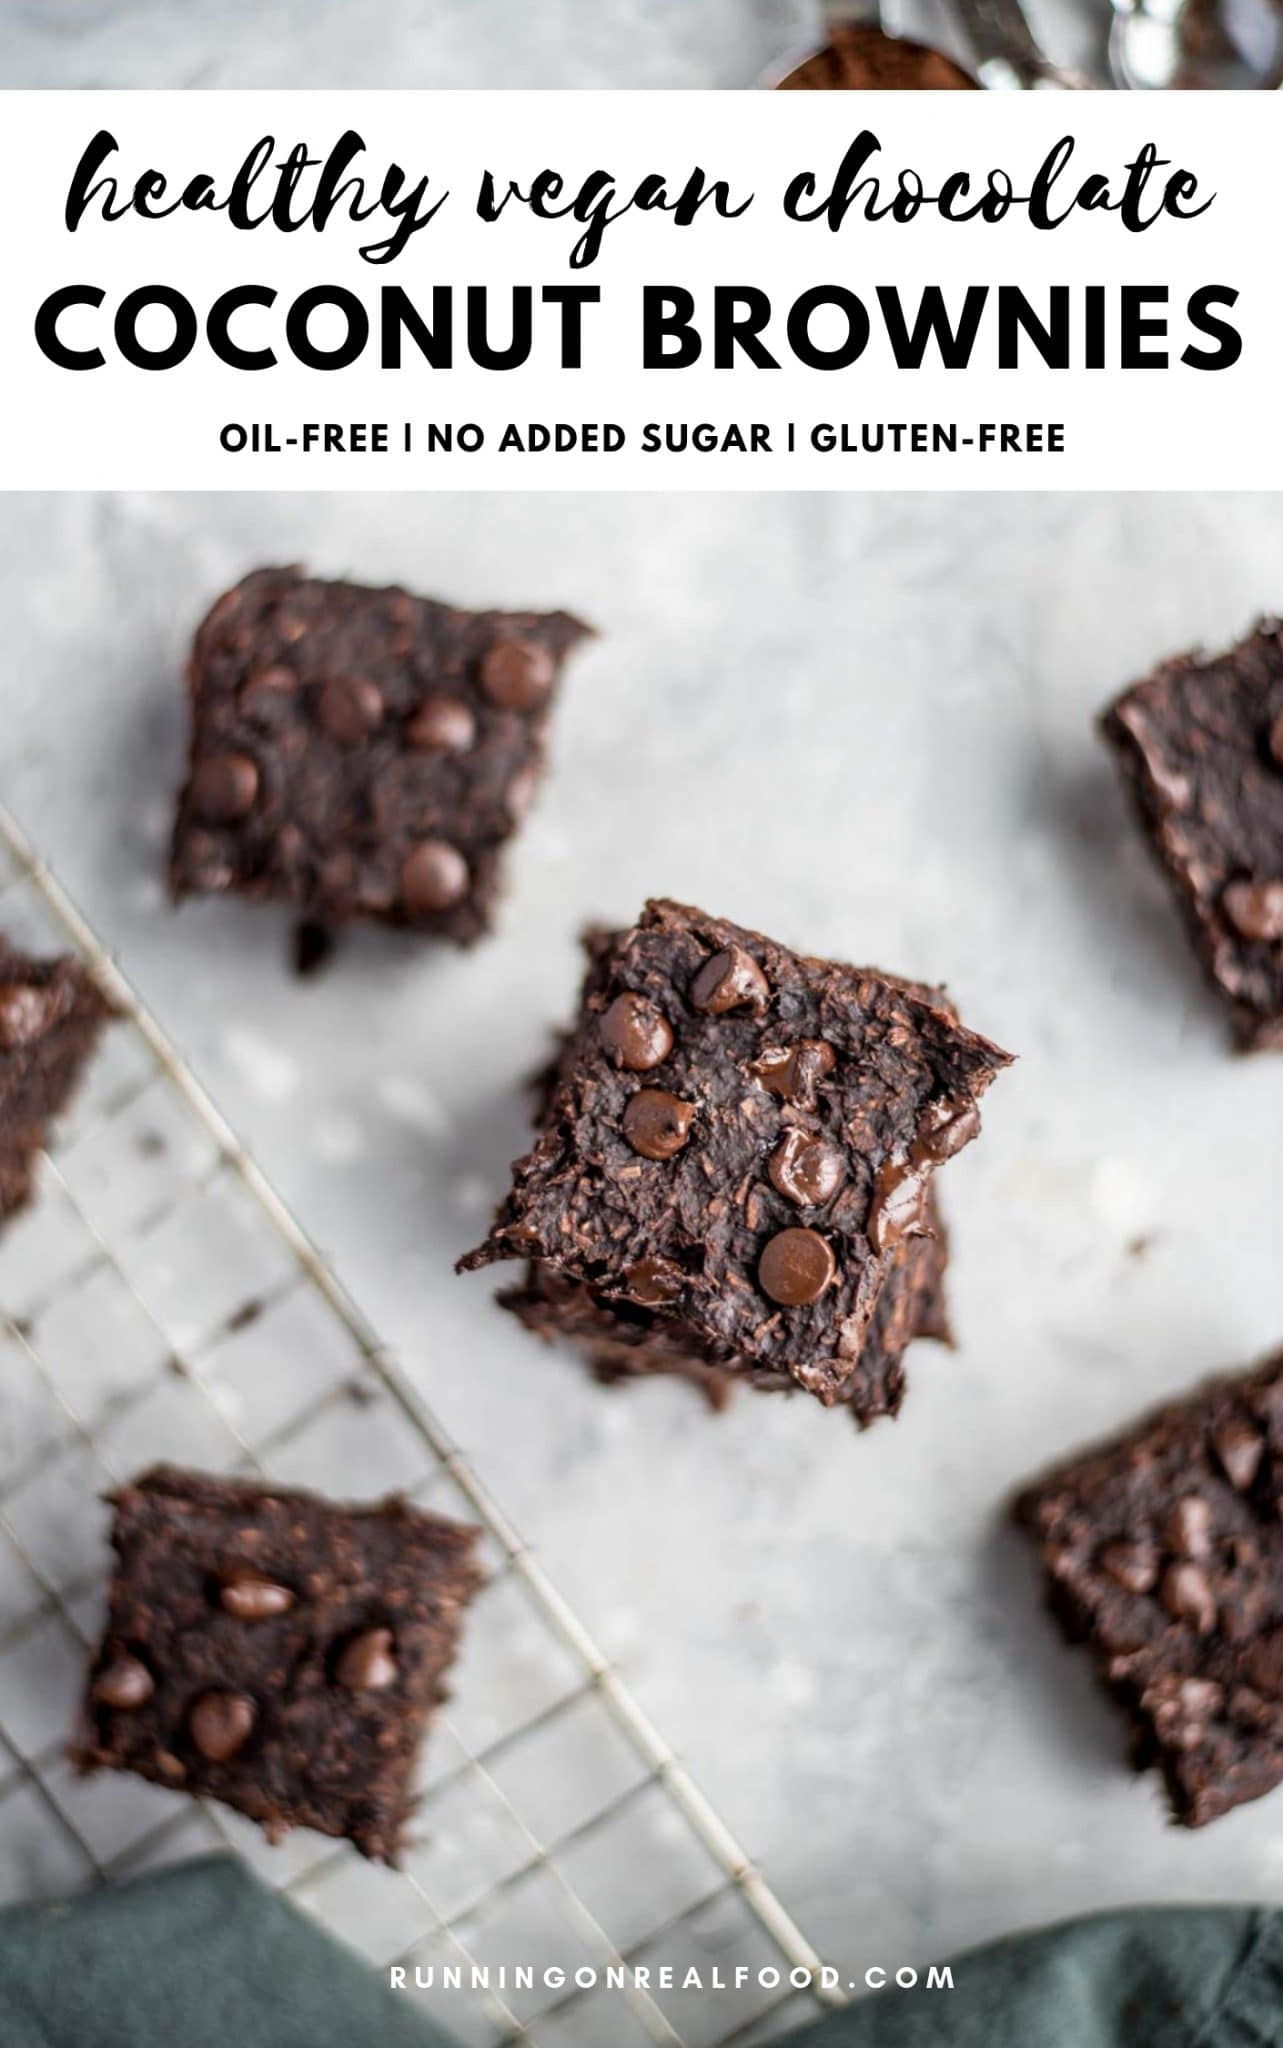 Healthy vegan chocolate coconut brownies made with protein powder, banana, cocoa powder, dairy-free chocolate chips and coconut. So easy to make with just 5 simple ingredients. Gluten-free, oil-free, no added sugar.